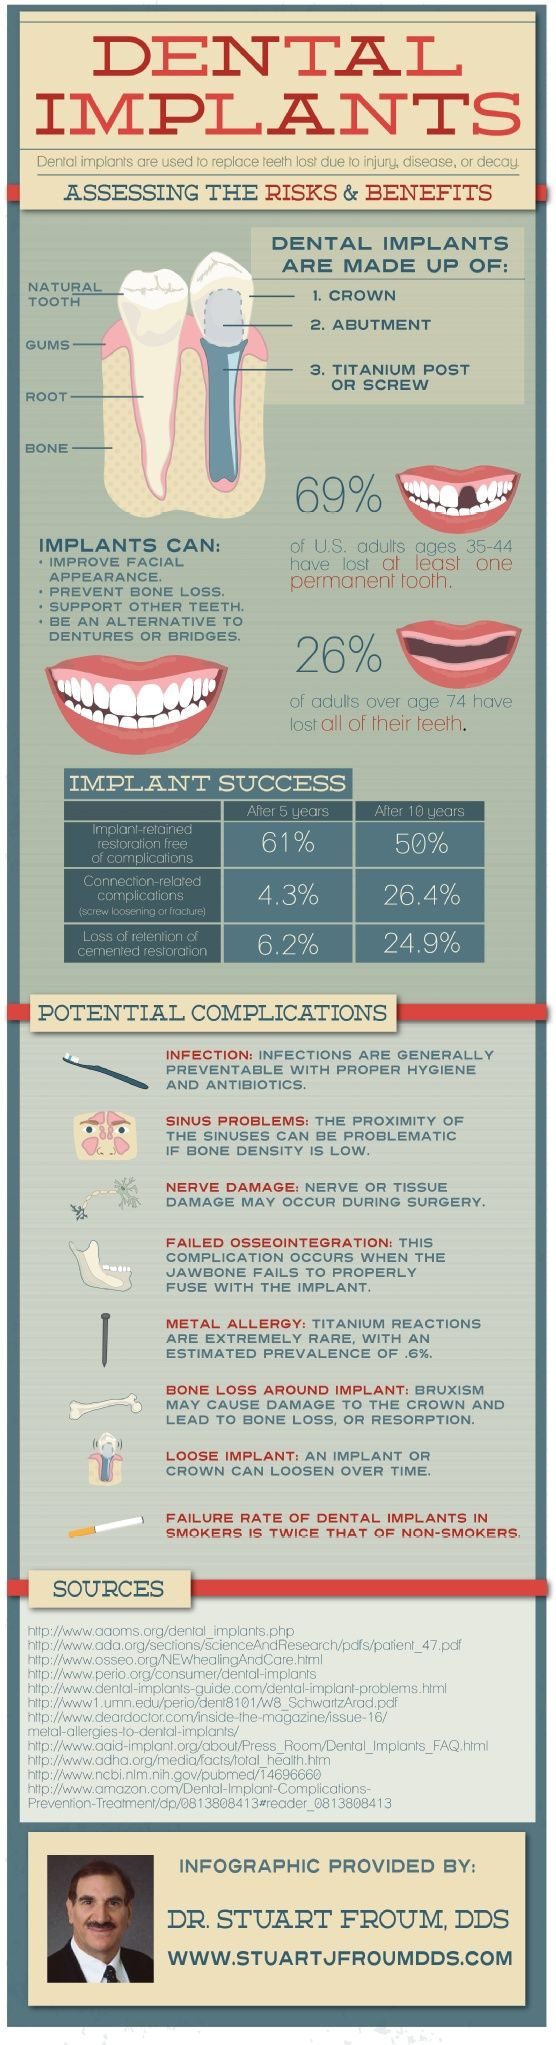 A useful infographic to understand dental implants. #dental #advice #infographic